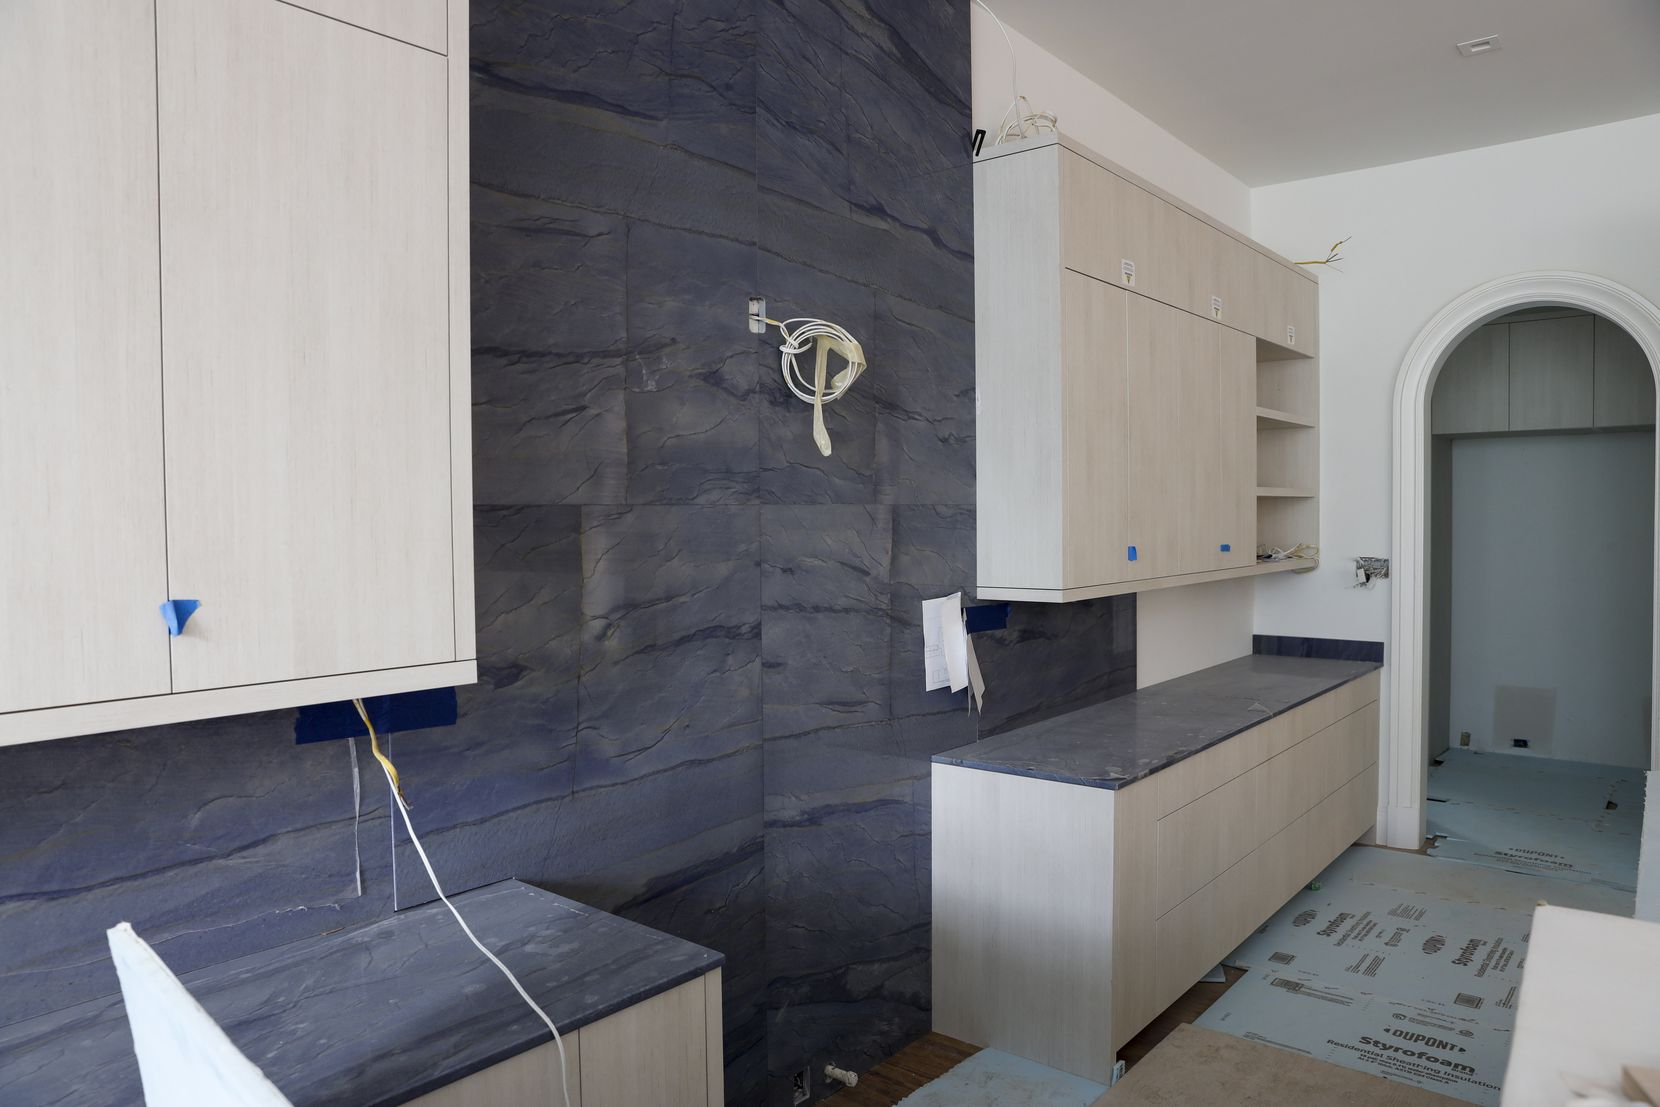 Azul macaubas lines the counters and backsplash in the kitchen.